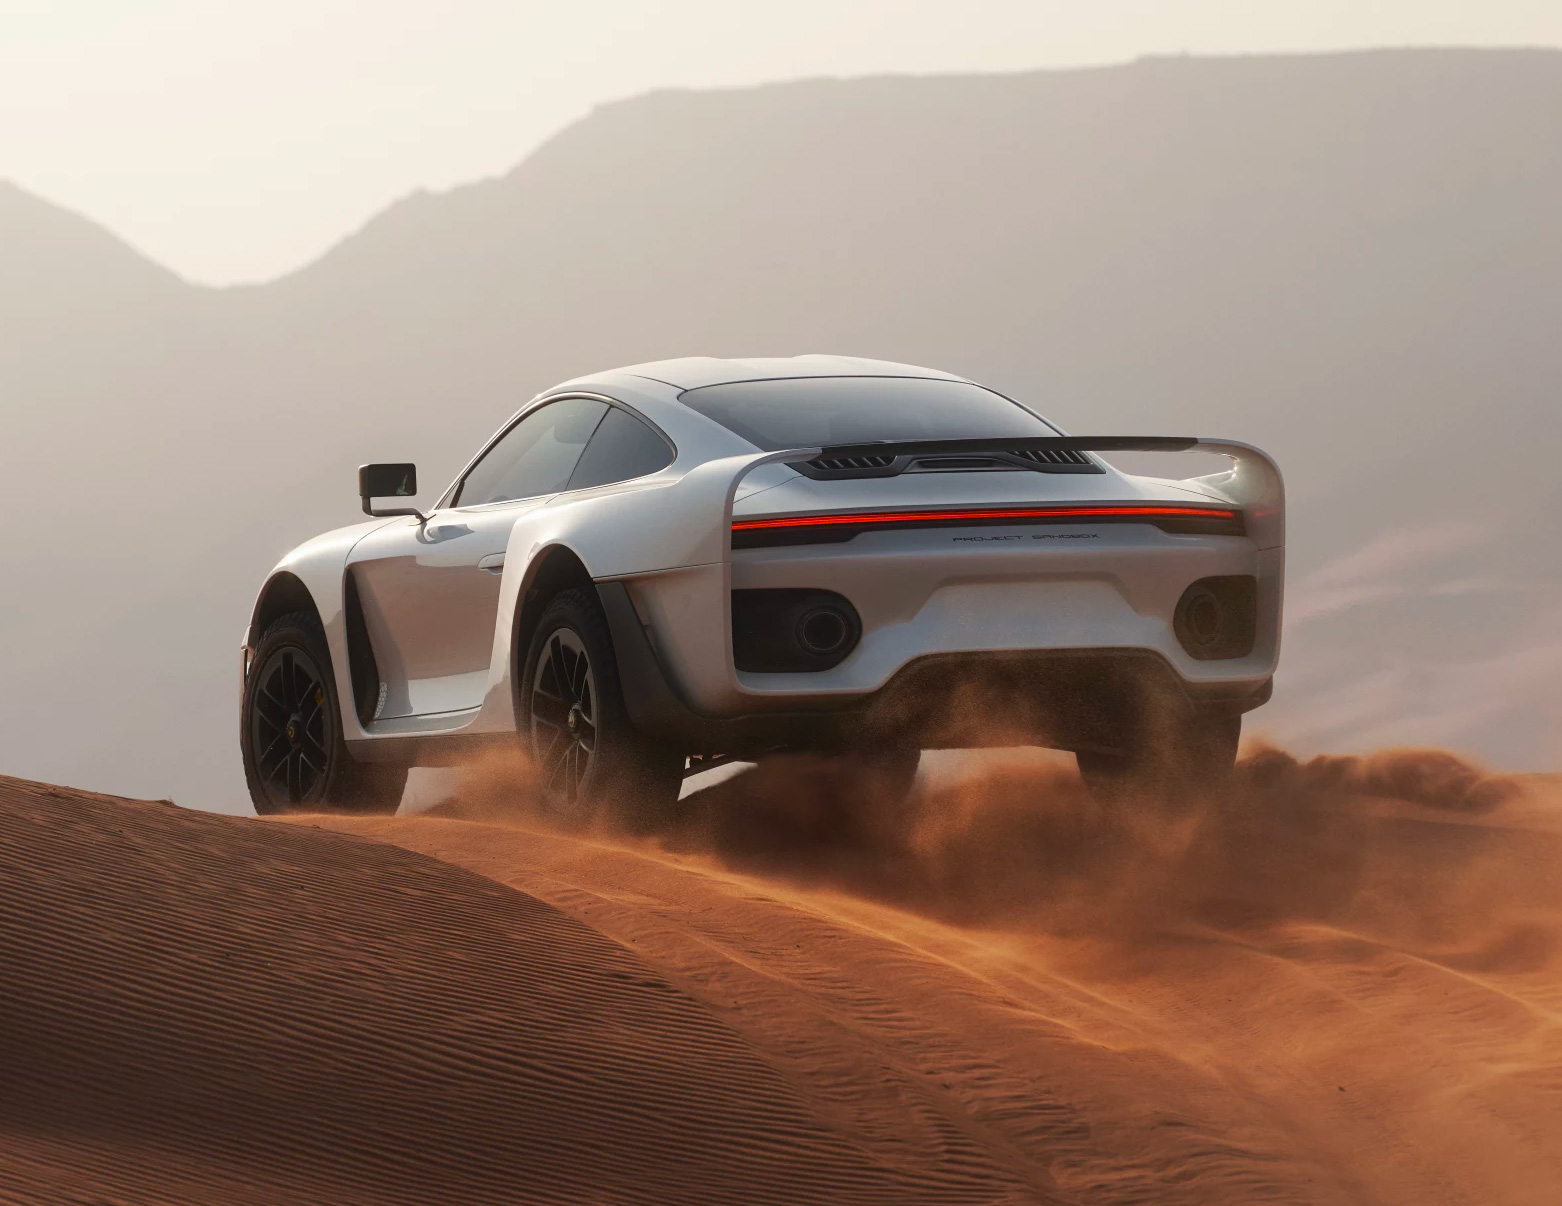 """The Latest """"Gemballa"""" Porsche Variant is Built for Off-Road Action at werd.com"""